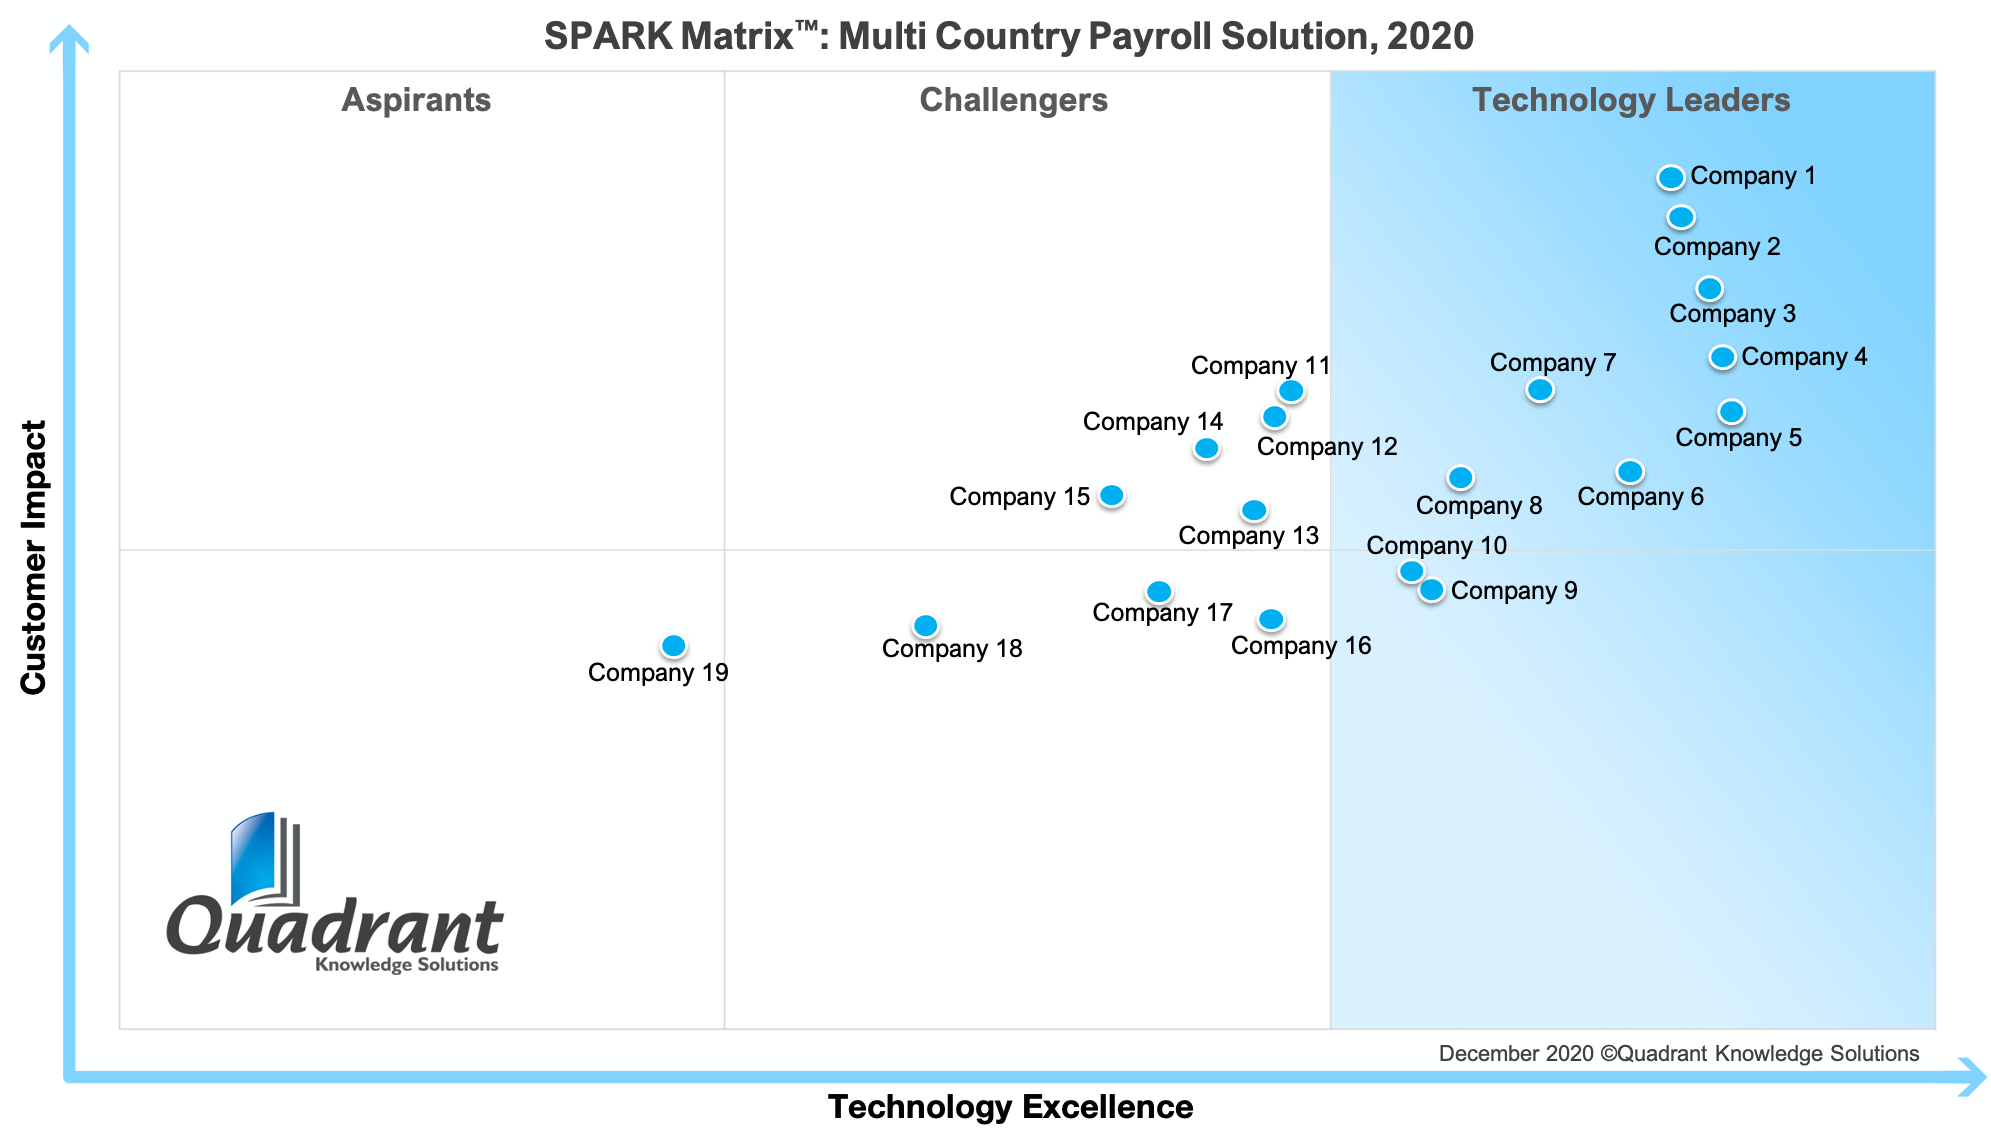 2020 SPARK Matrix Multi Country Payroll Quadrant Knowledge Solutions